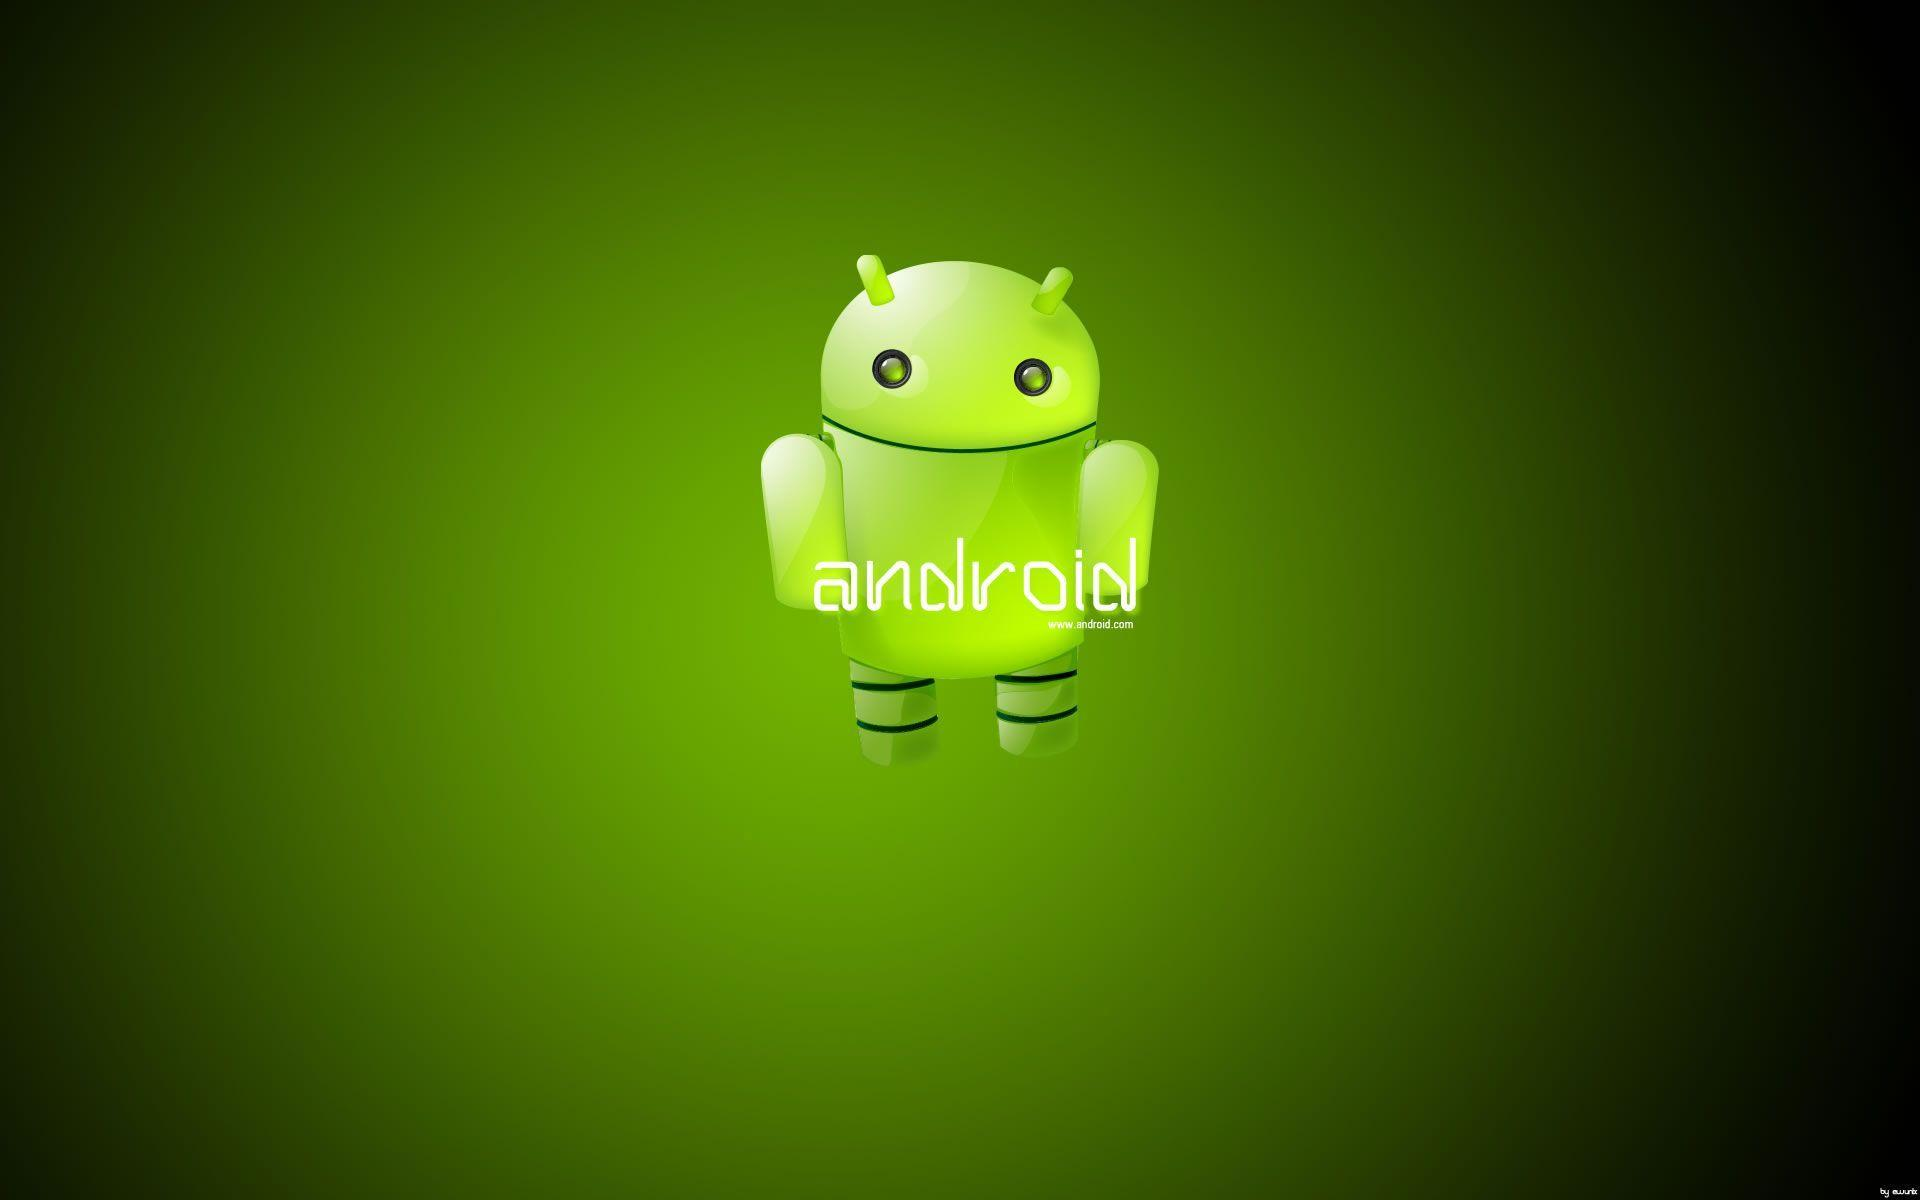 Android Desktop Wallpapers